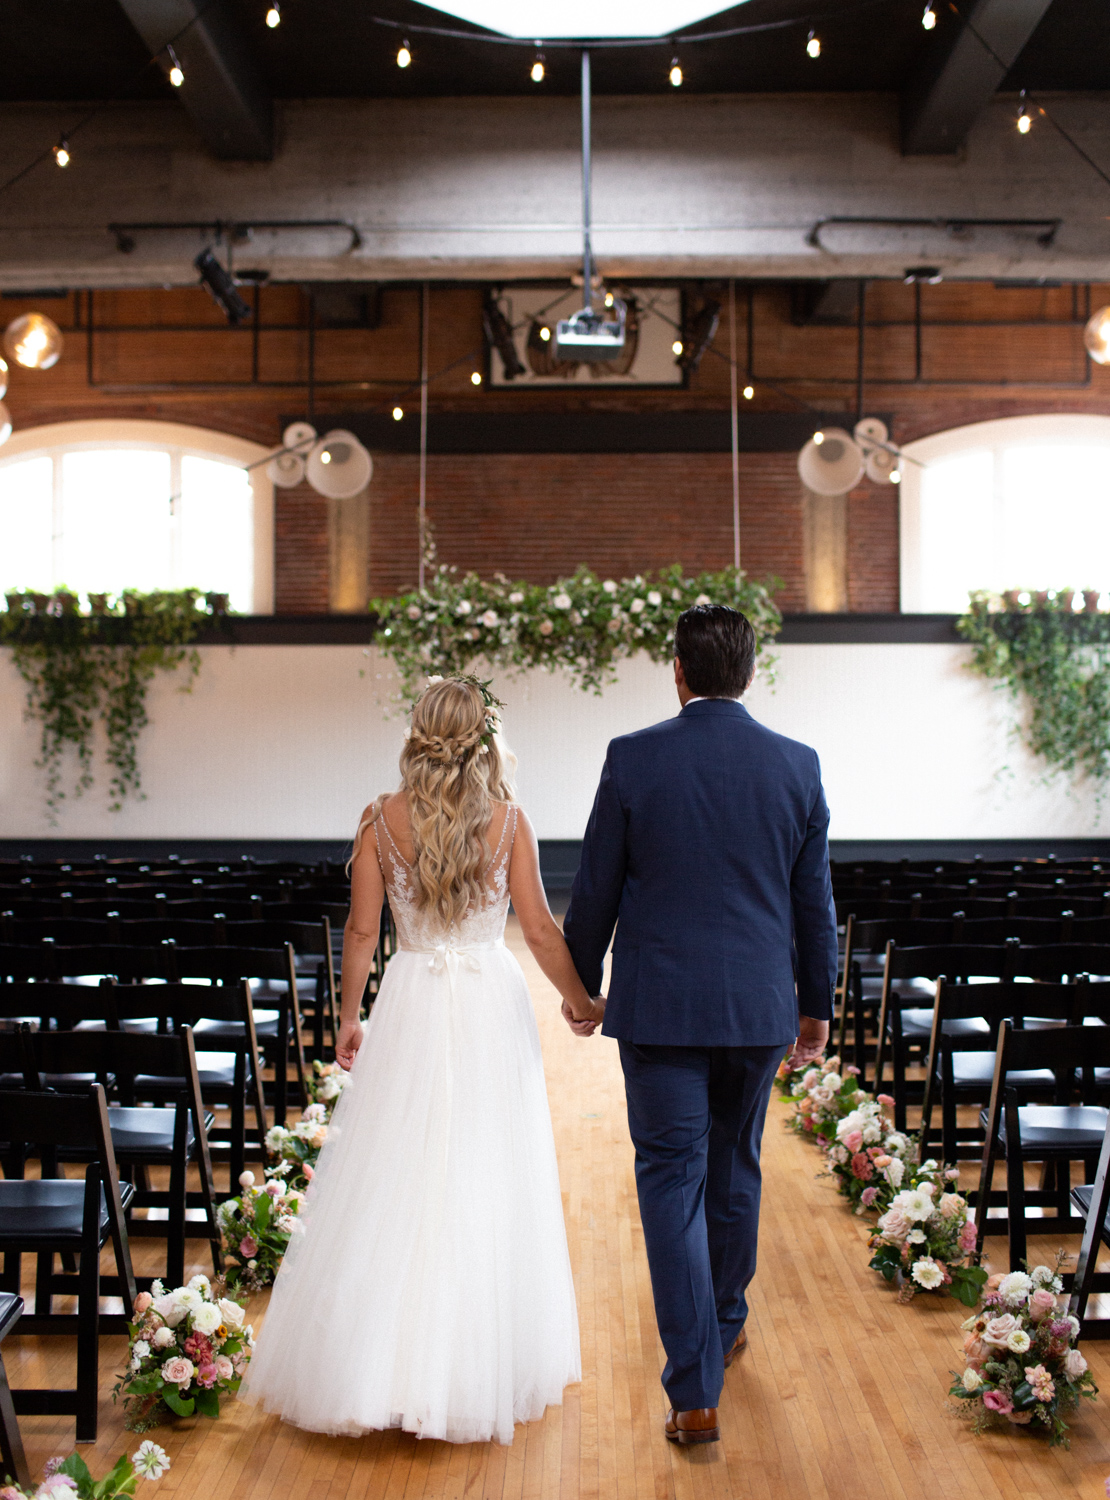 Jessica + Scott_Olivia_Ashton_Photography-37-16.jpg